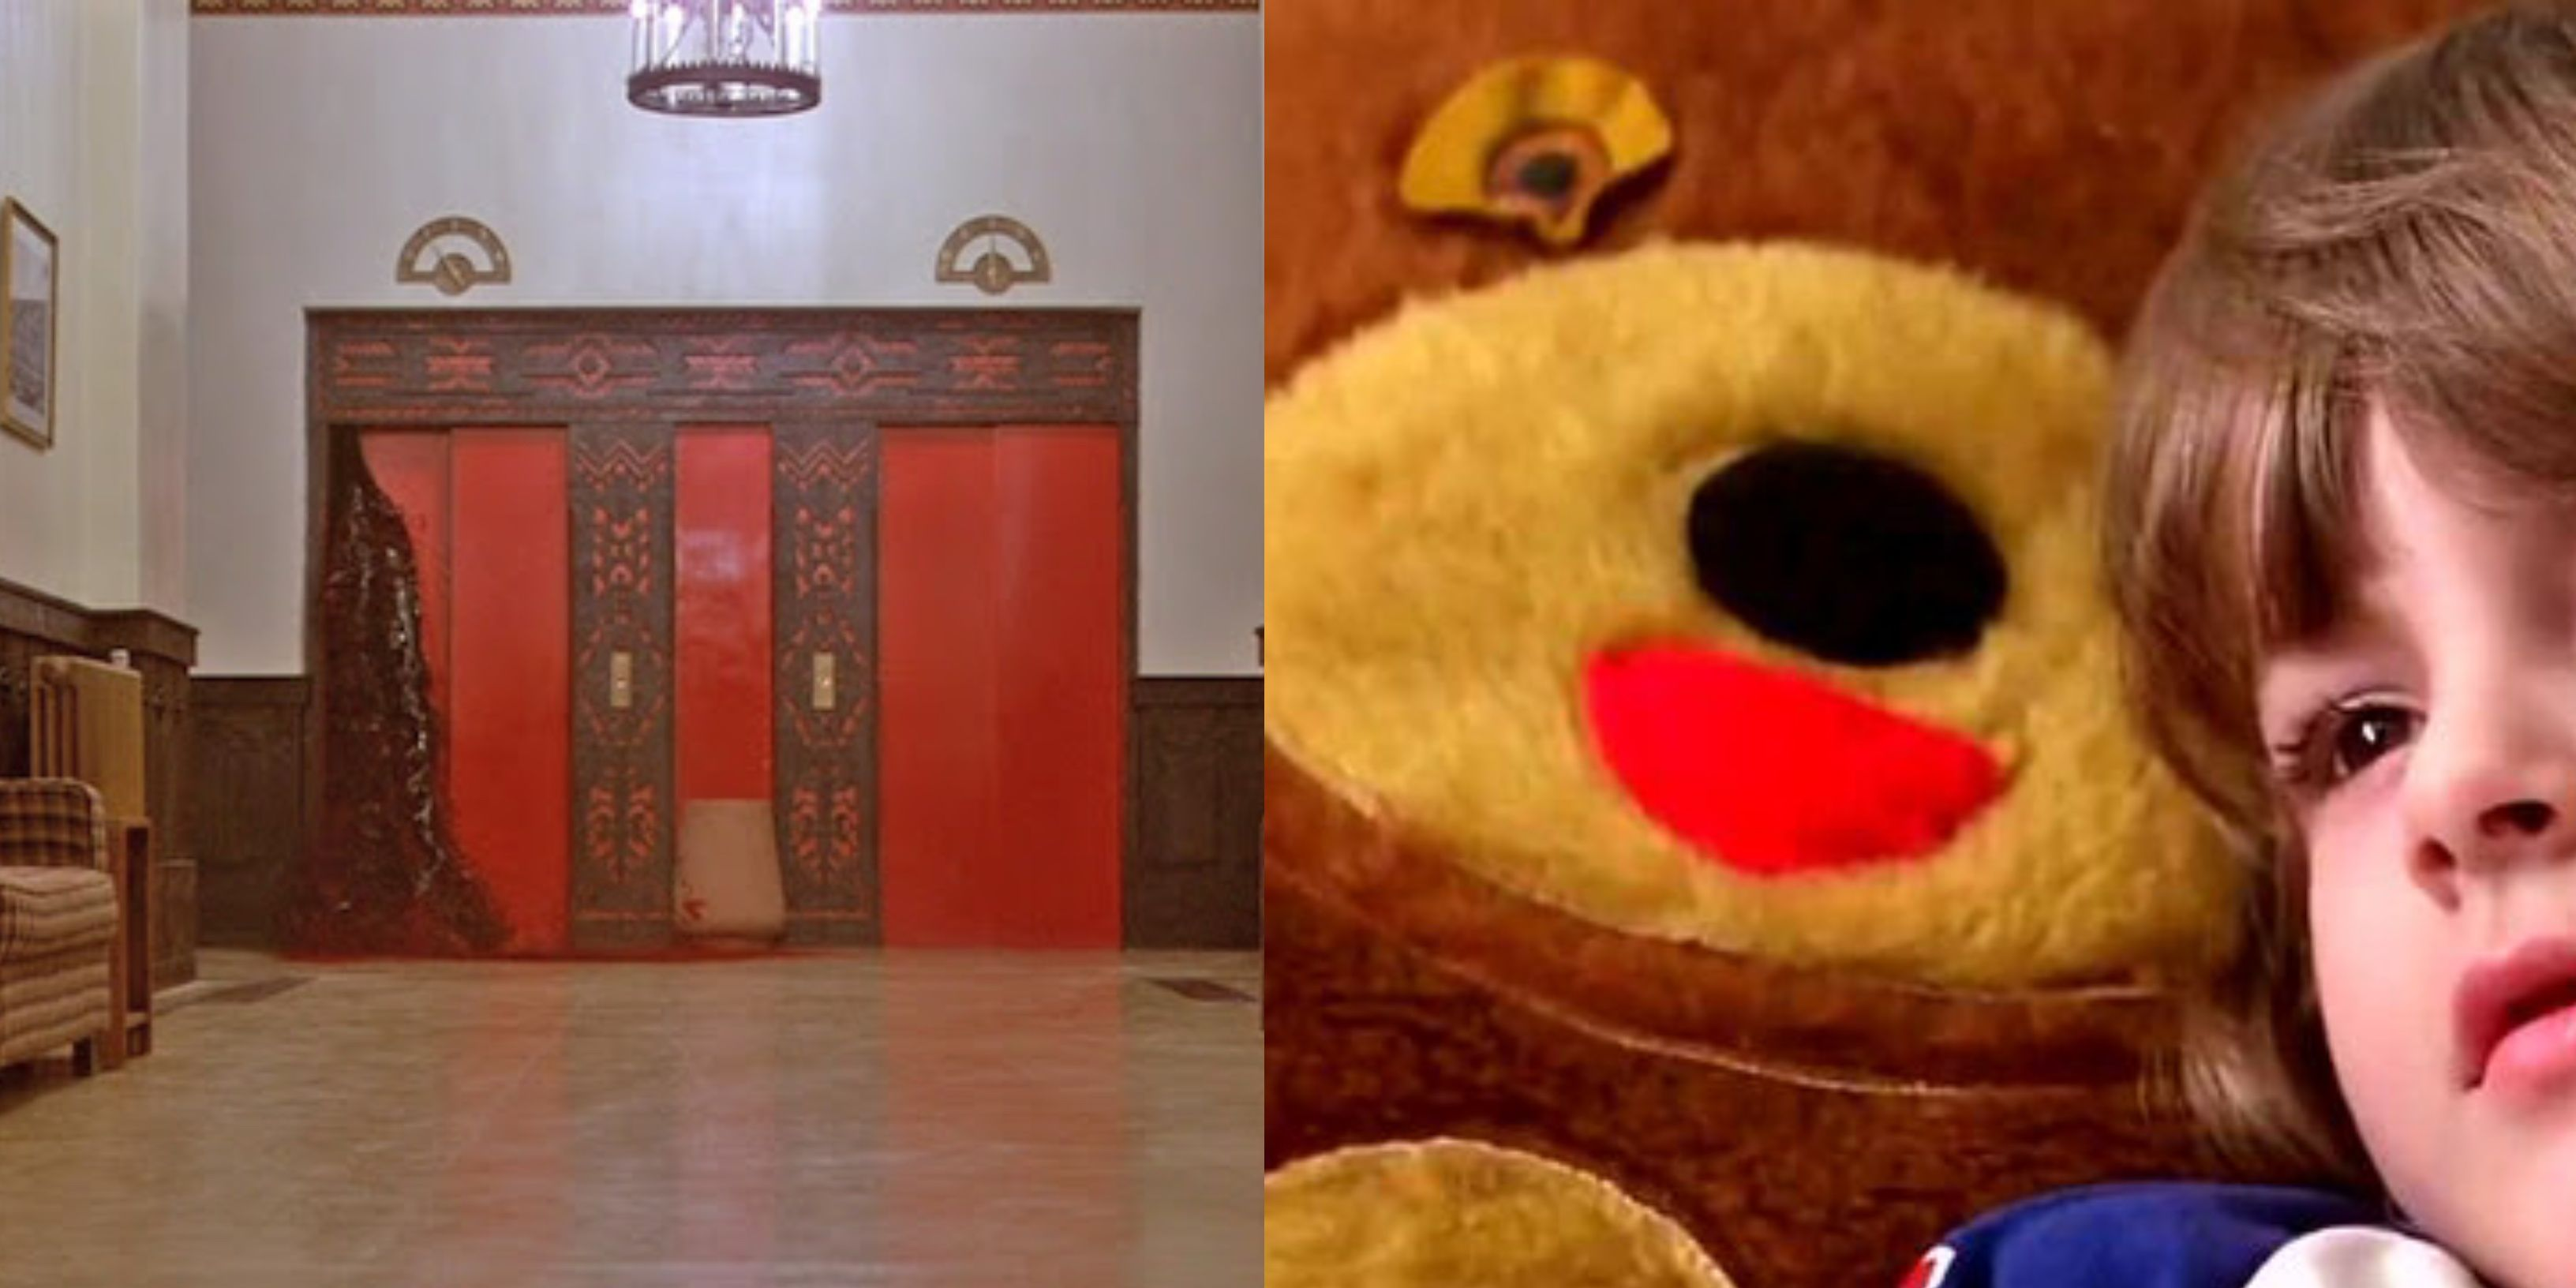 The Shining: What Happened To Danny In Room 237?